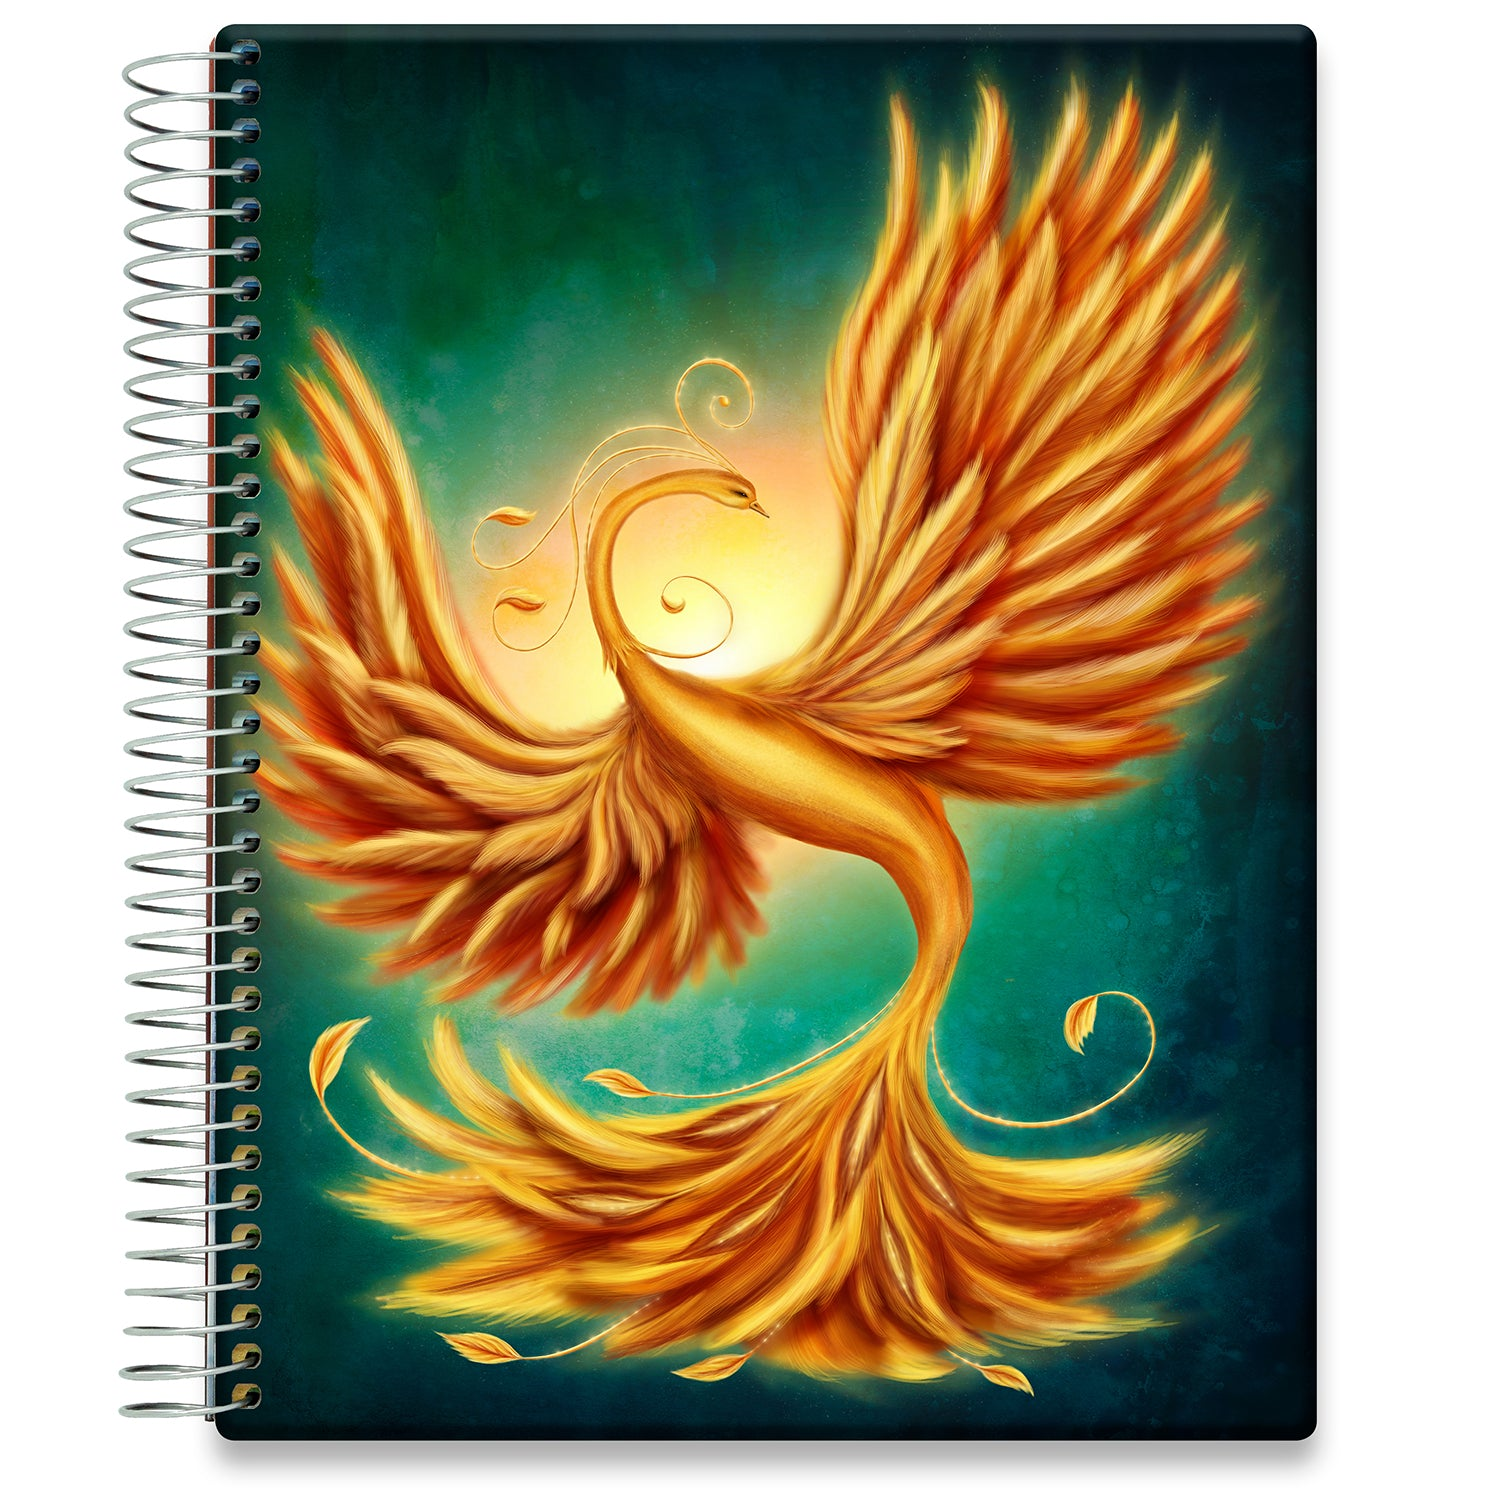 Planner 2021-2022 • April 2021 to June 2022 Academic Year • 8.5x11 Hardcover • Phoenix Rising Cover